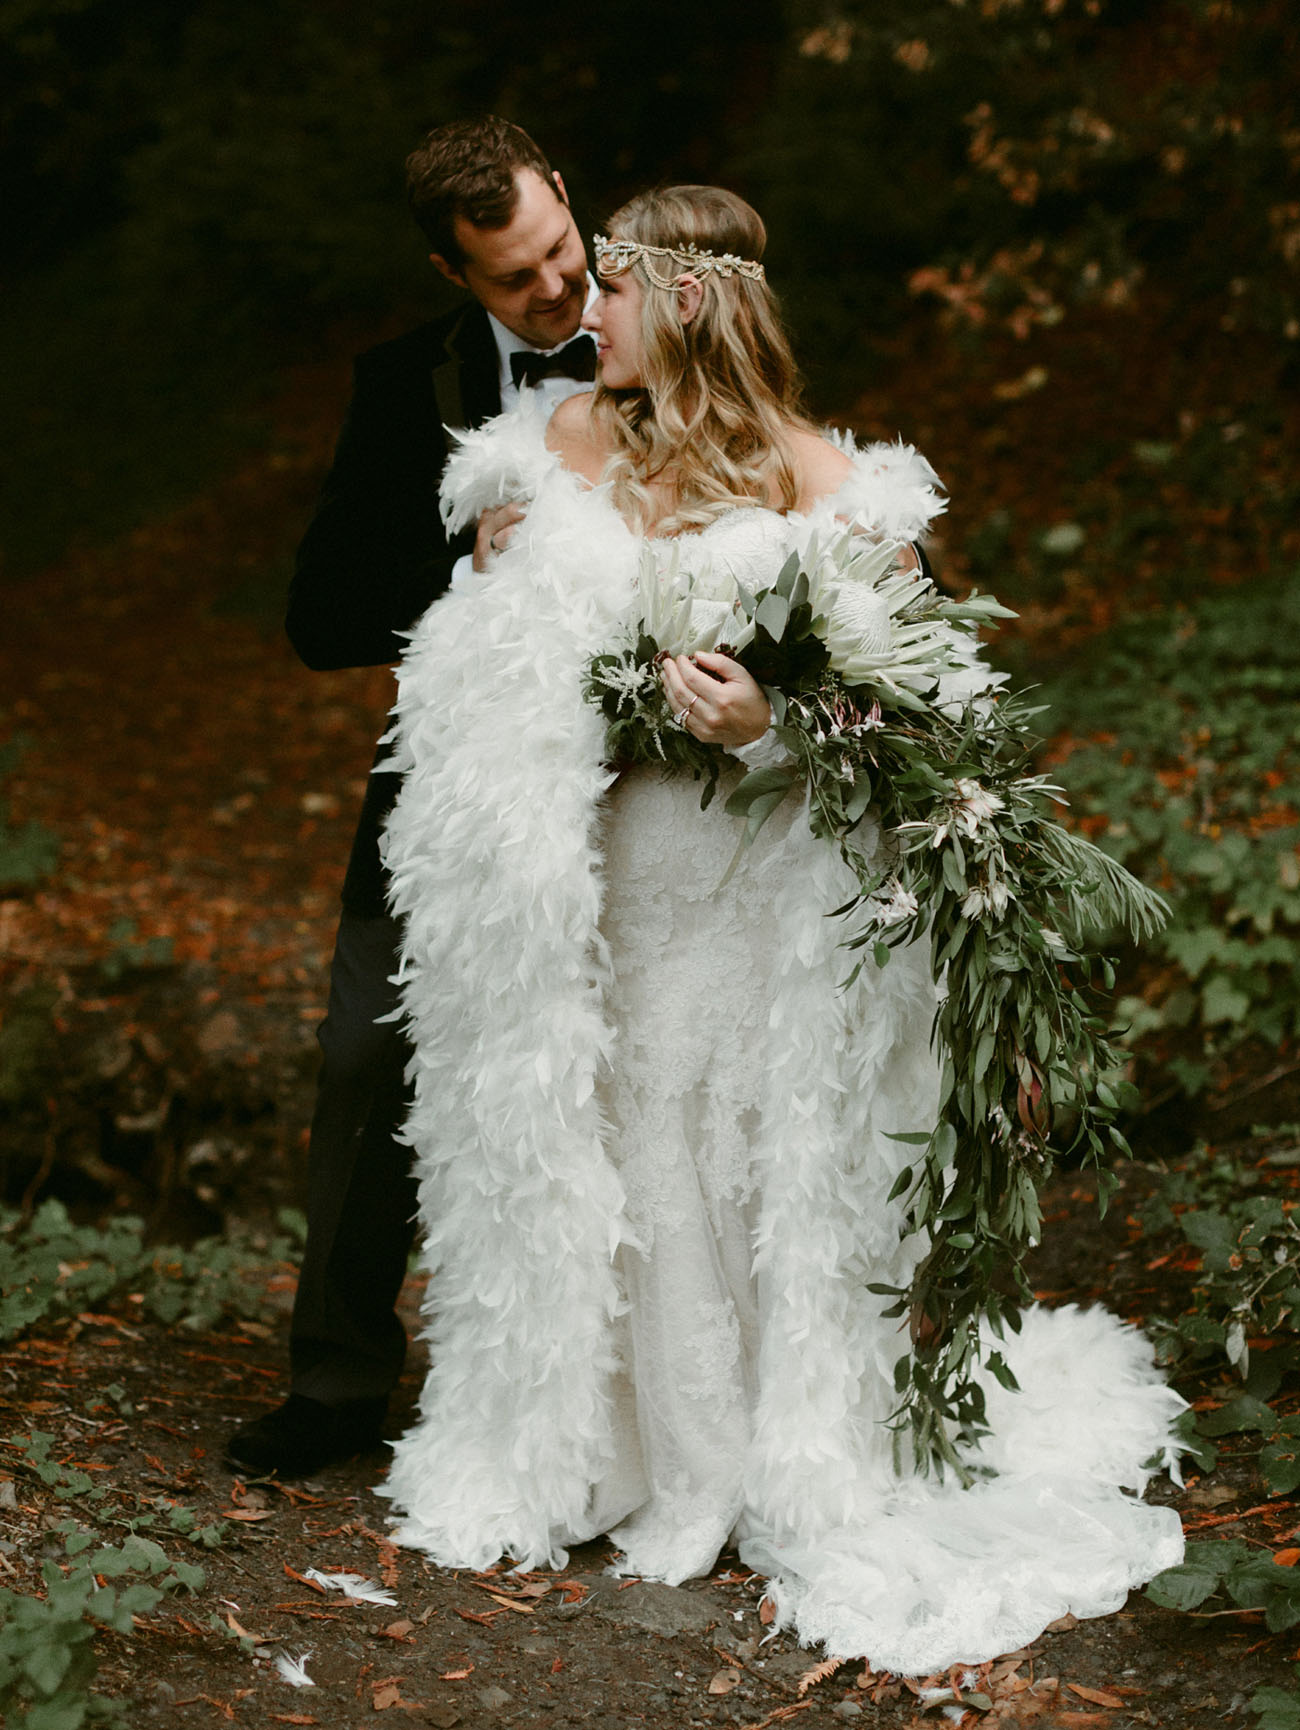 A Fairytale Forest Wedding With A Feather Cape Green Wedding Shoes